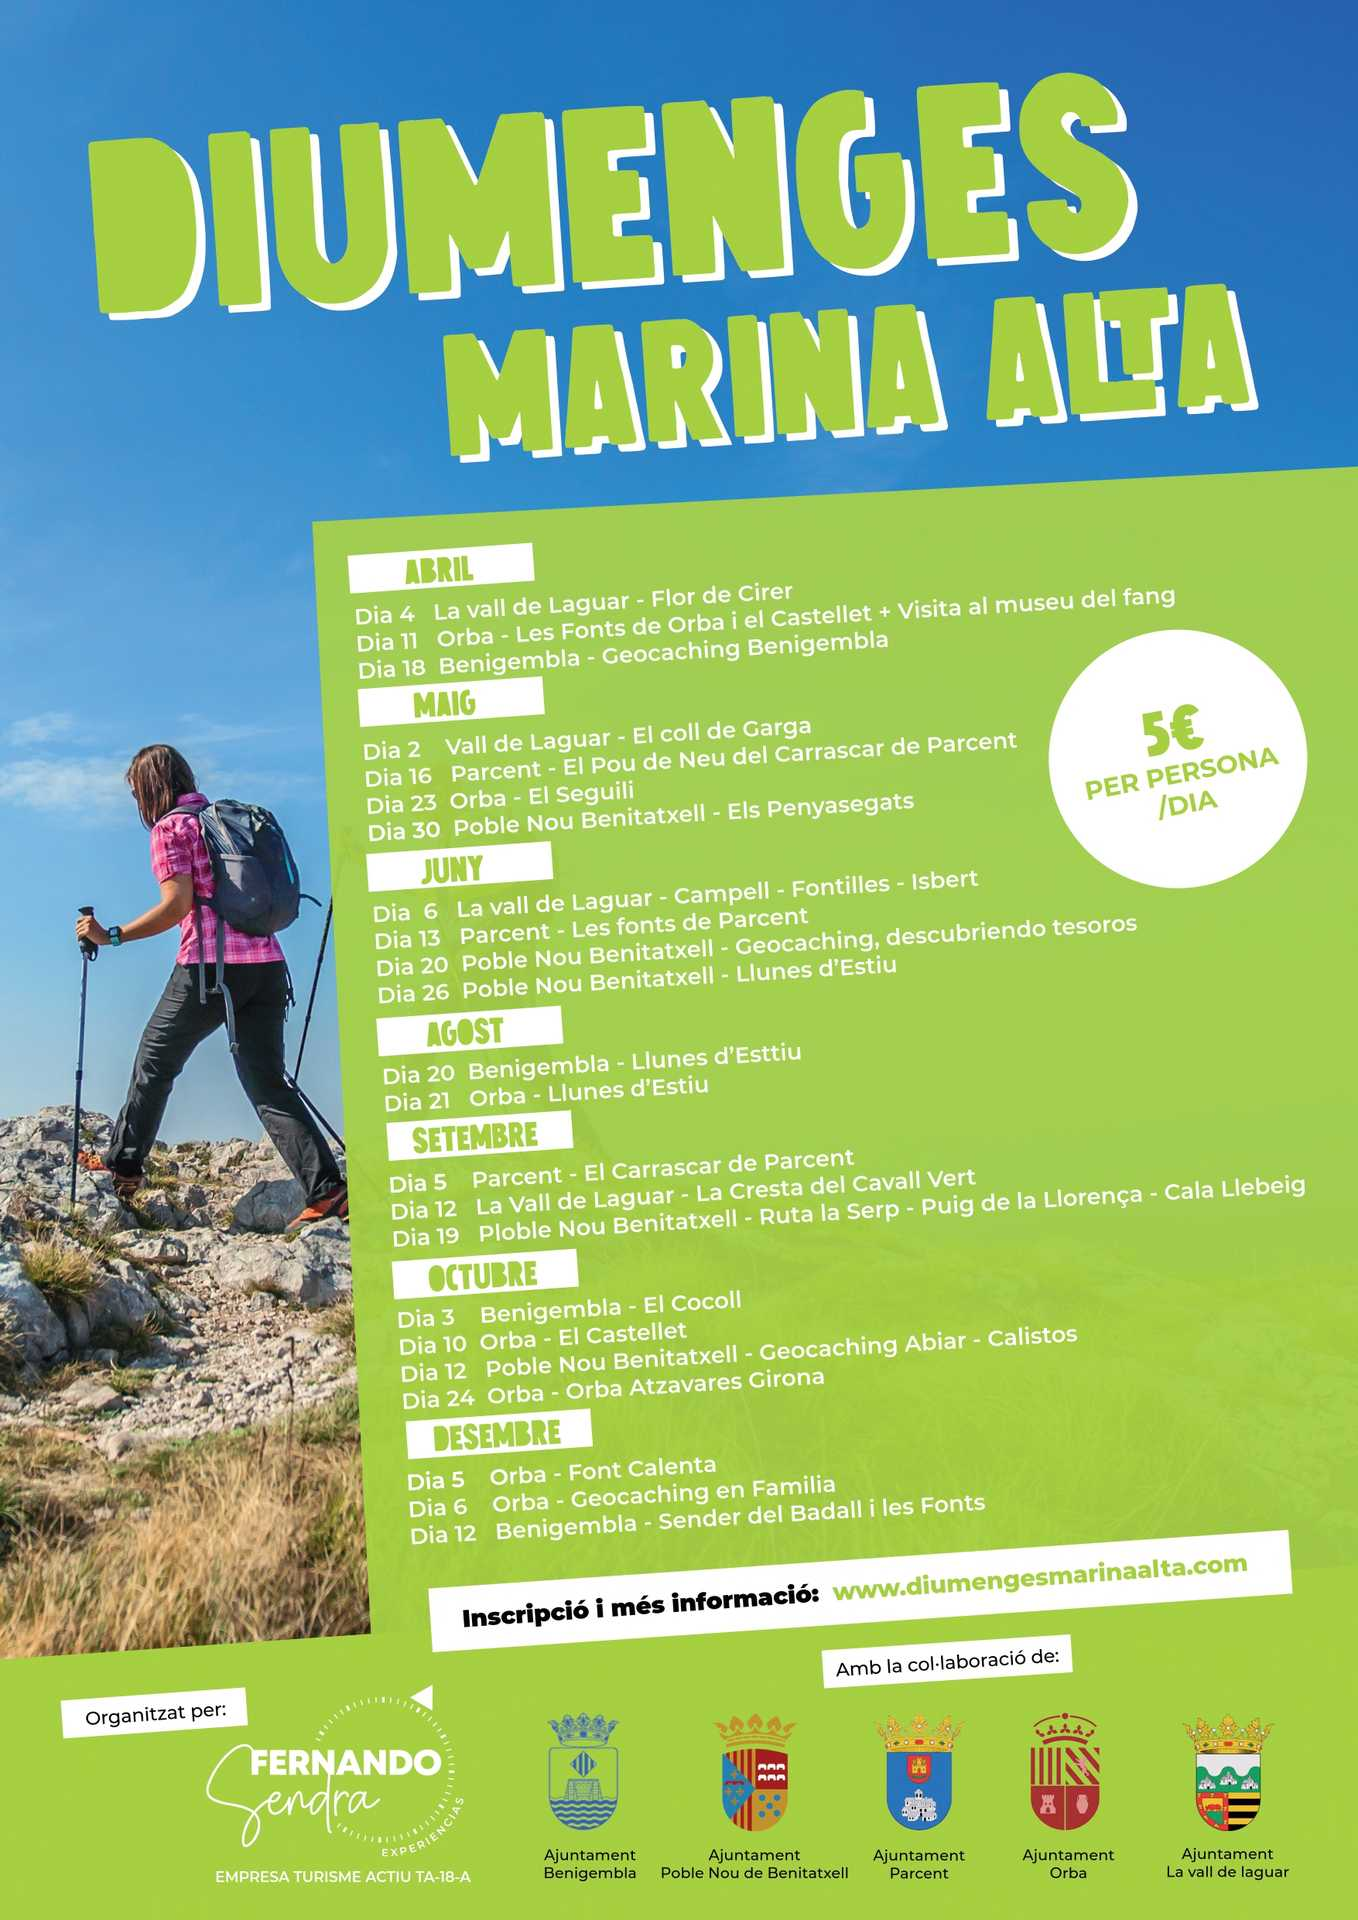 Diumenge Marina Alta - Hiking Routes